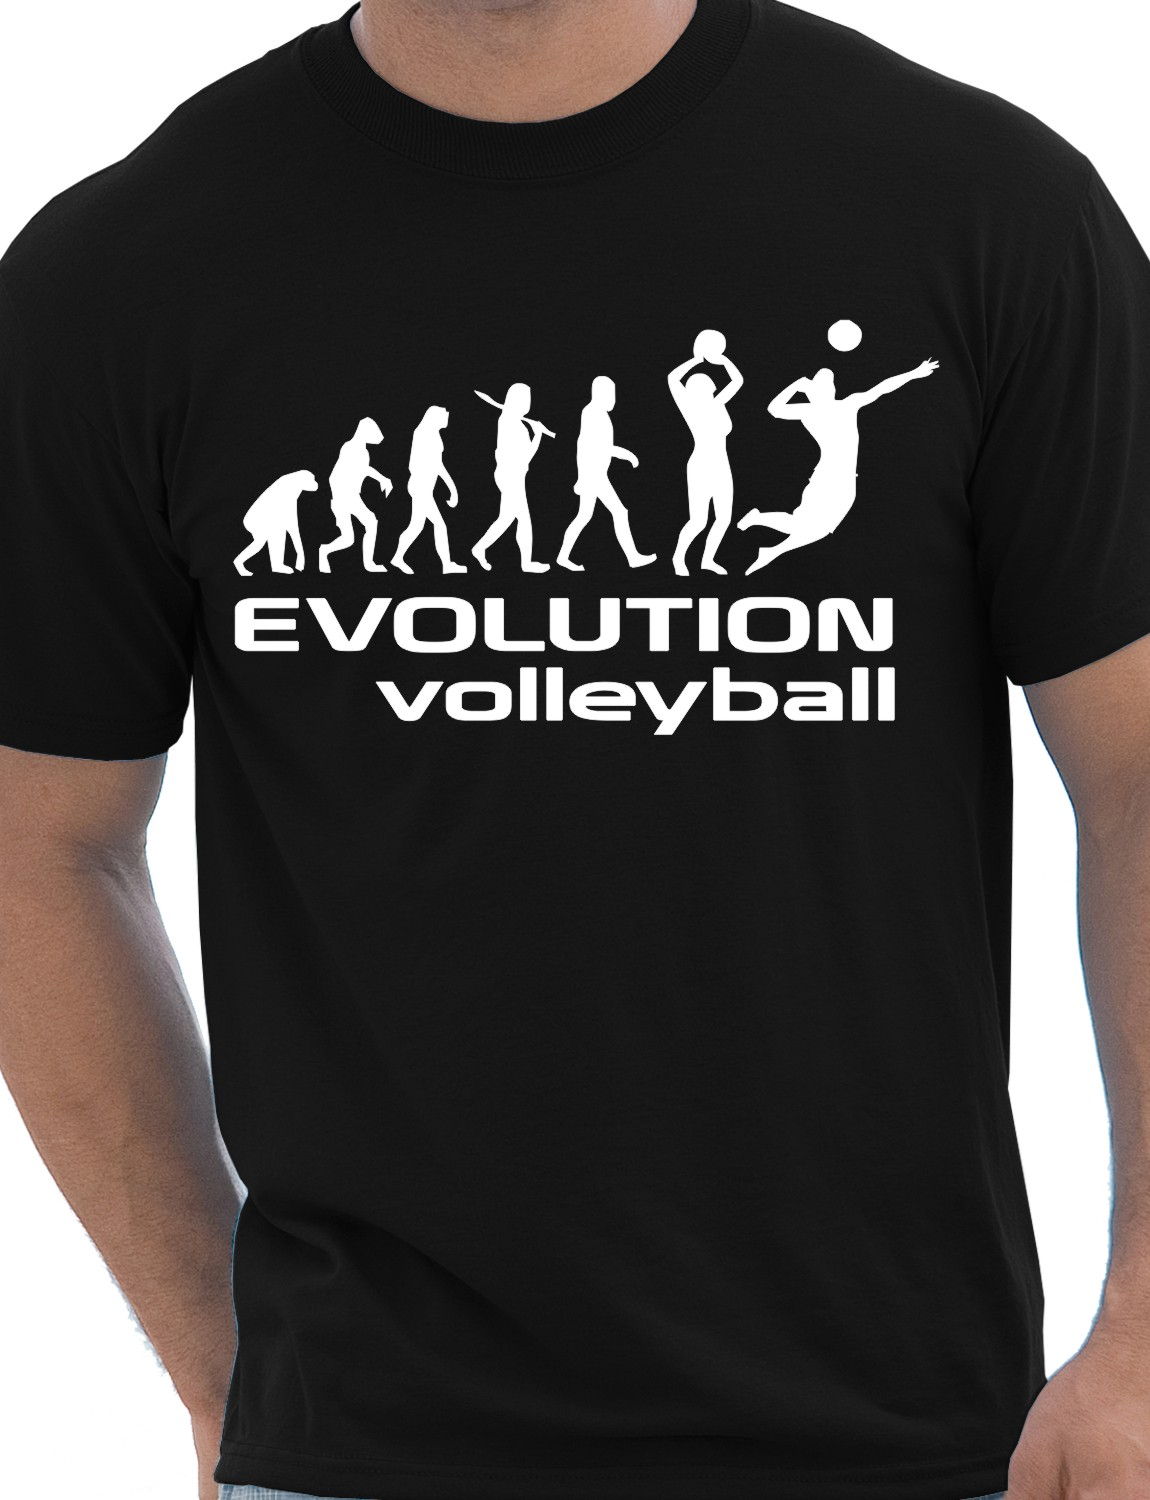 cool volleyball t shirt designs volleyball t shirt design ideas - Volleyball T Shirt Design Ideas